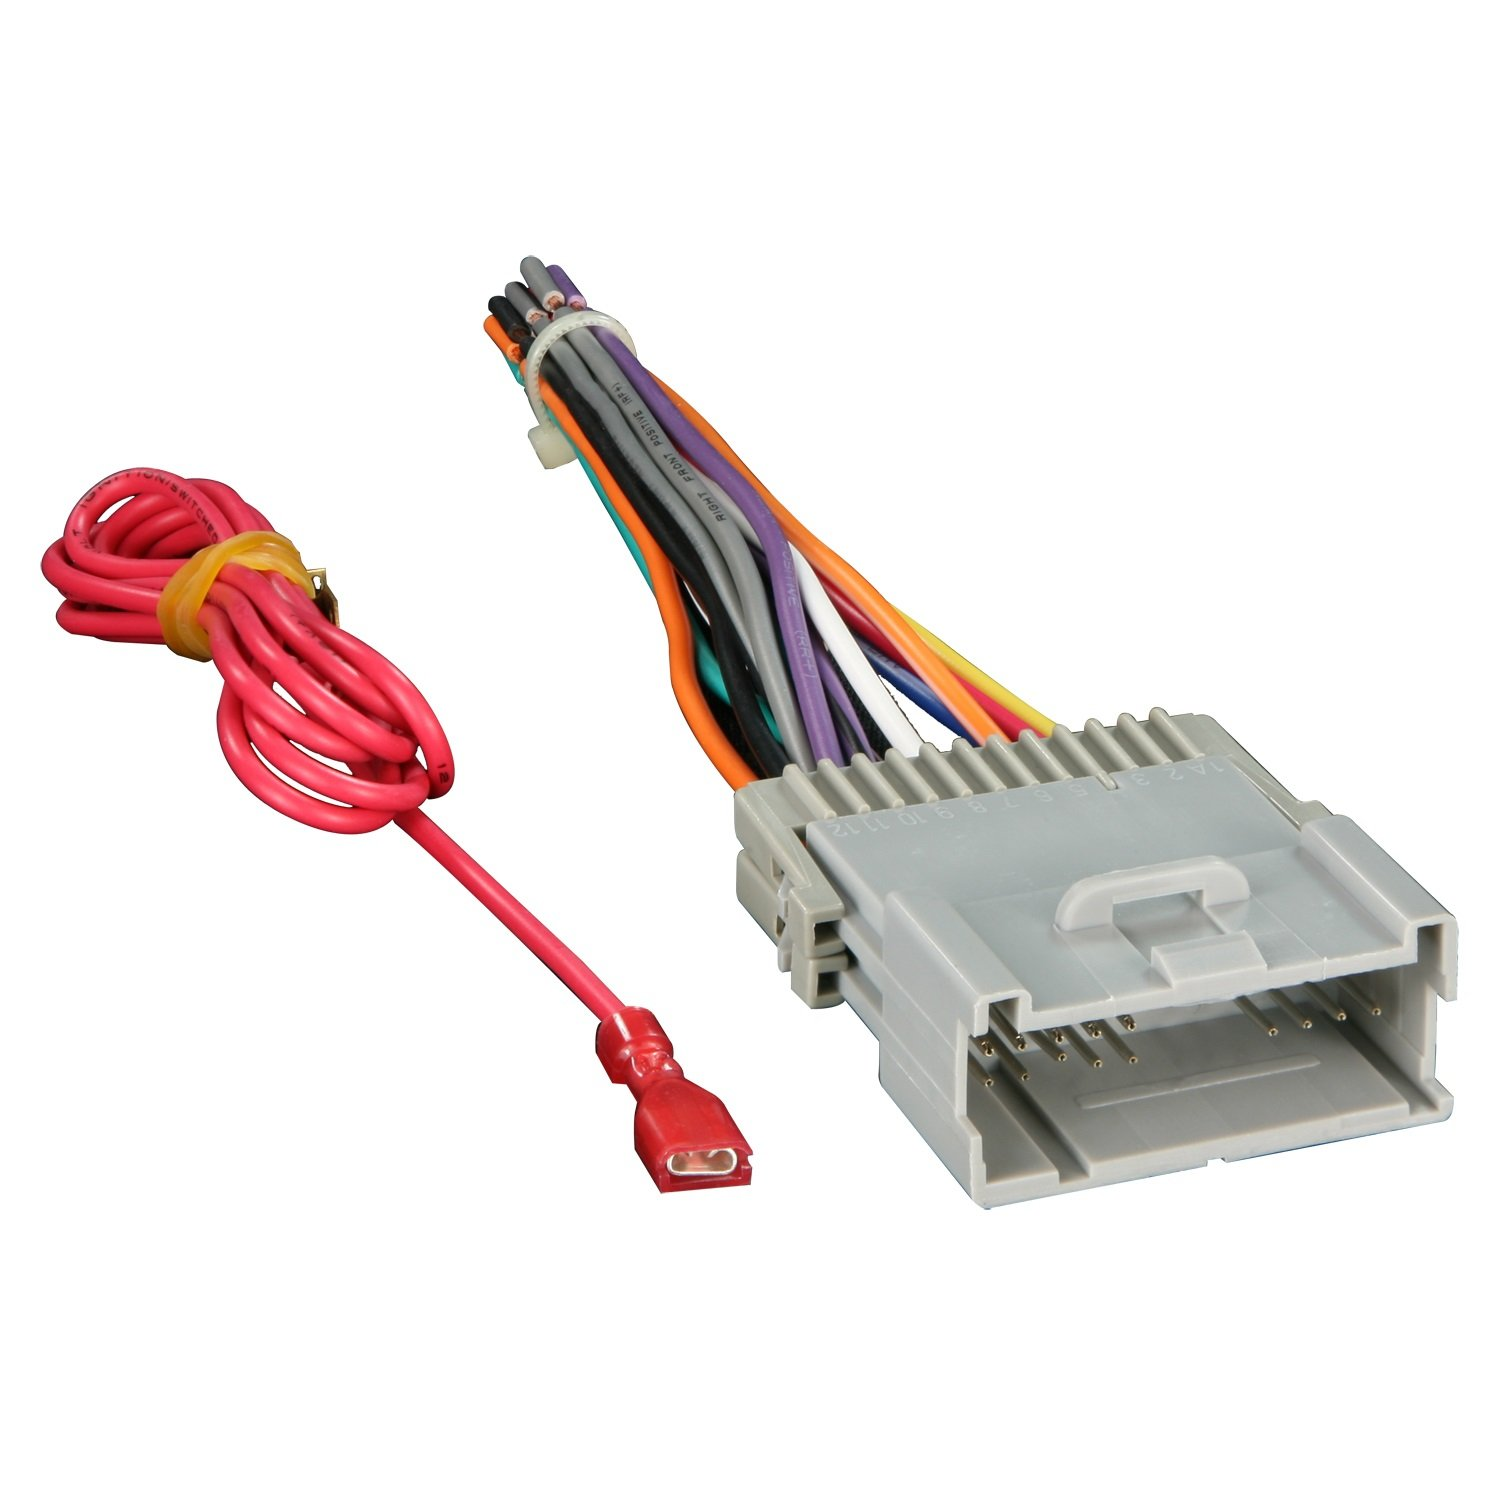 61eewxp9orL._SL1500_ amazon com metra 70 2003 radio wiring harness for gm 98 08 what is a wire harness in a car at alyssarenee.co